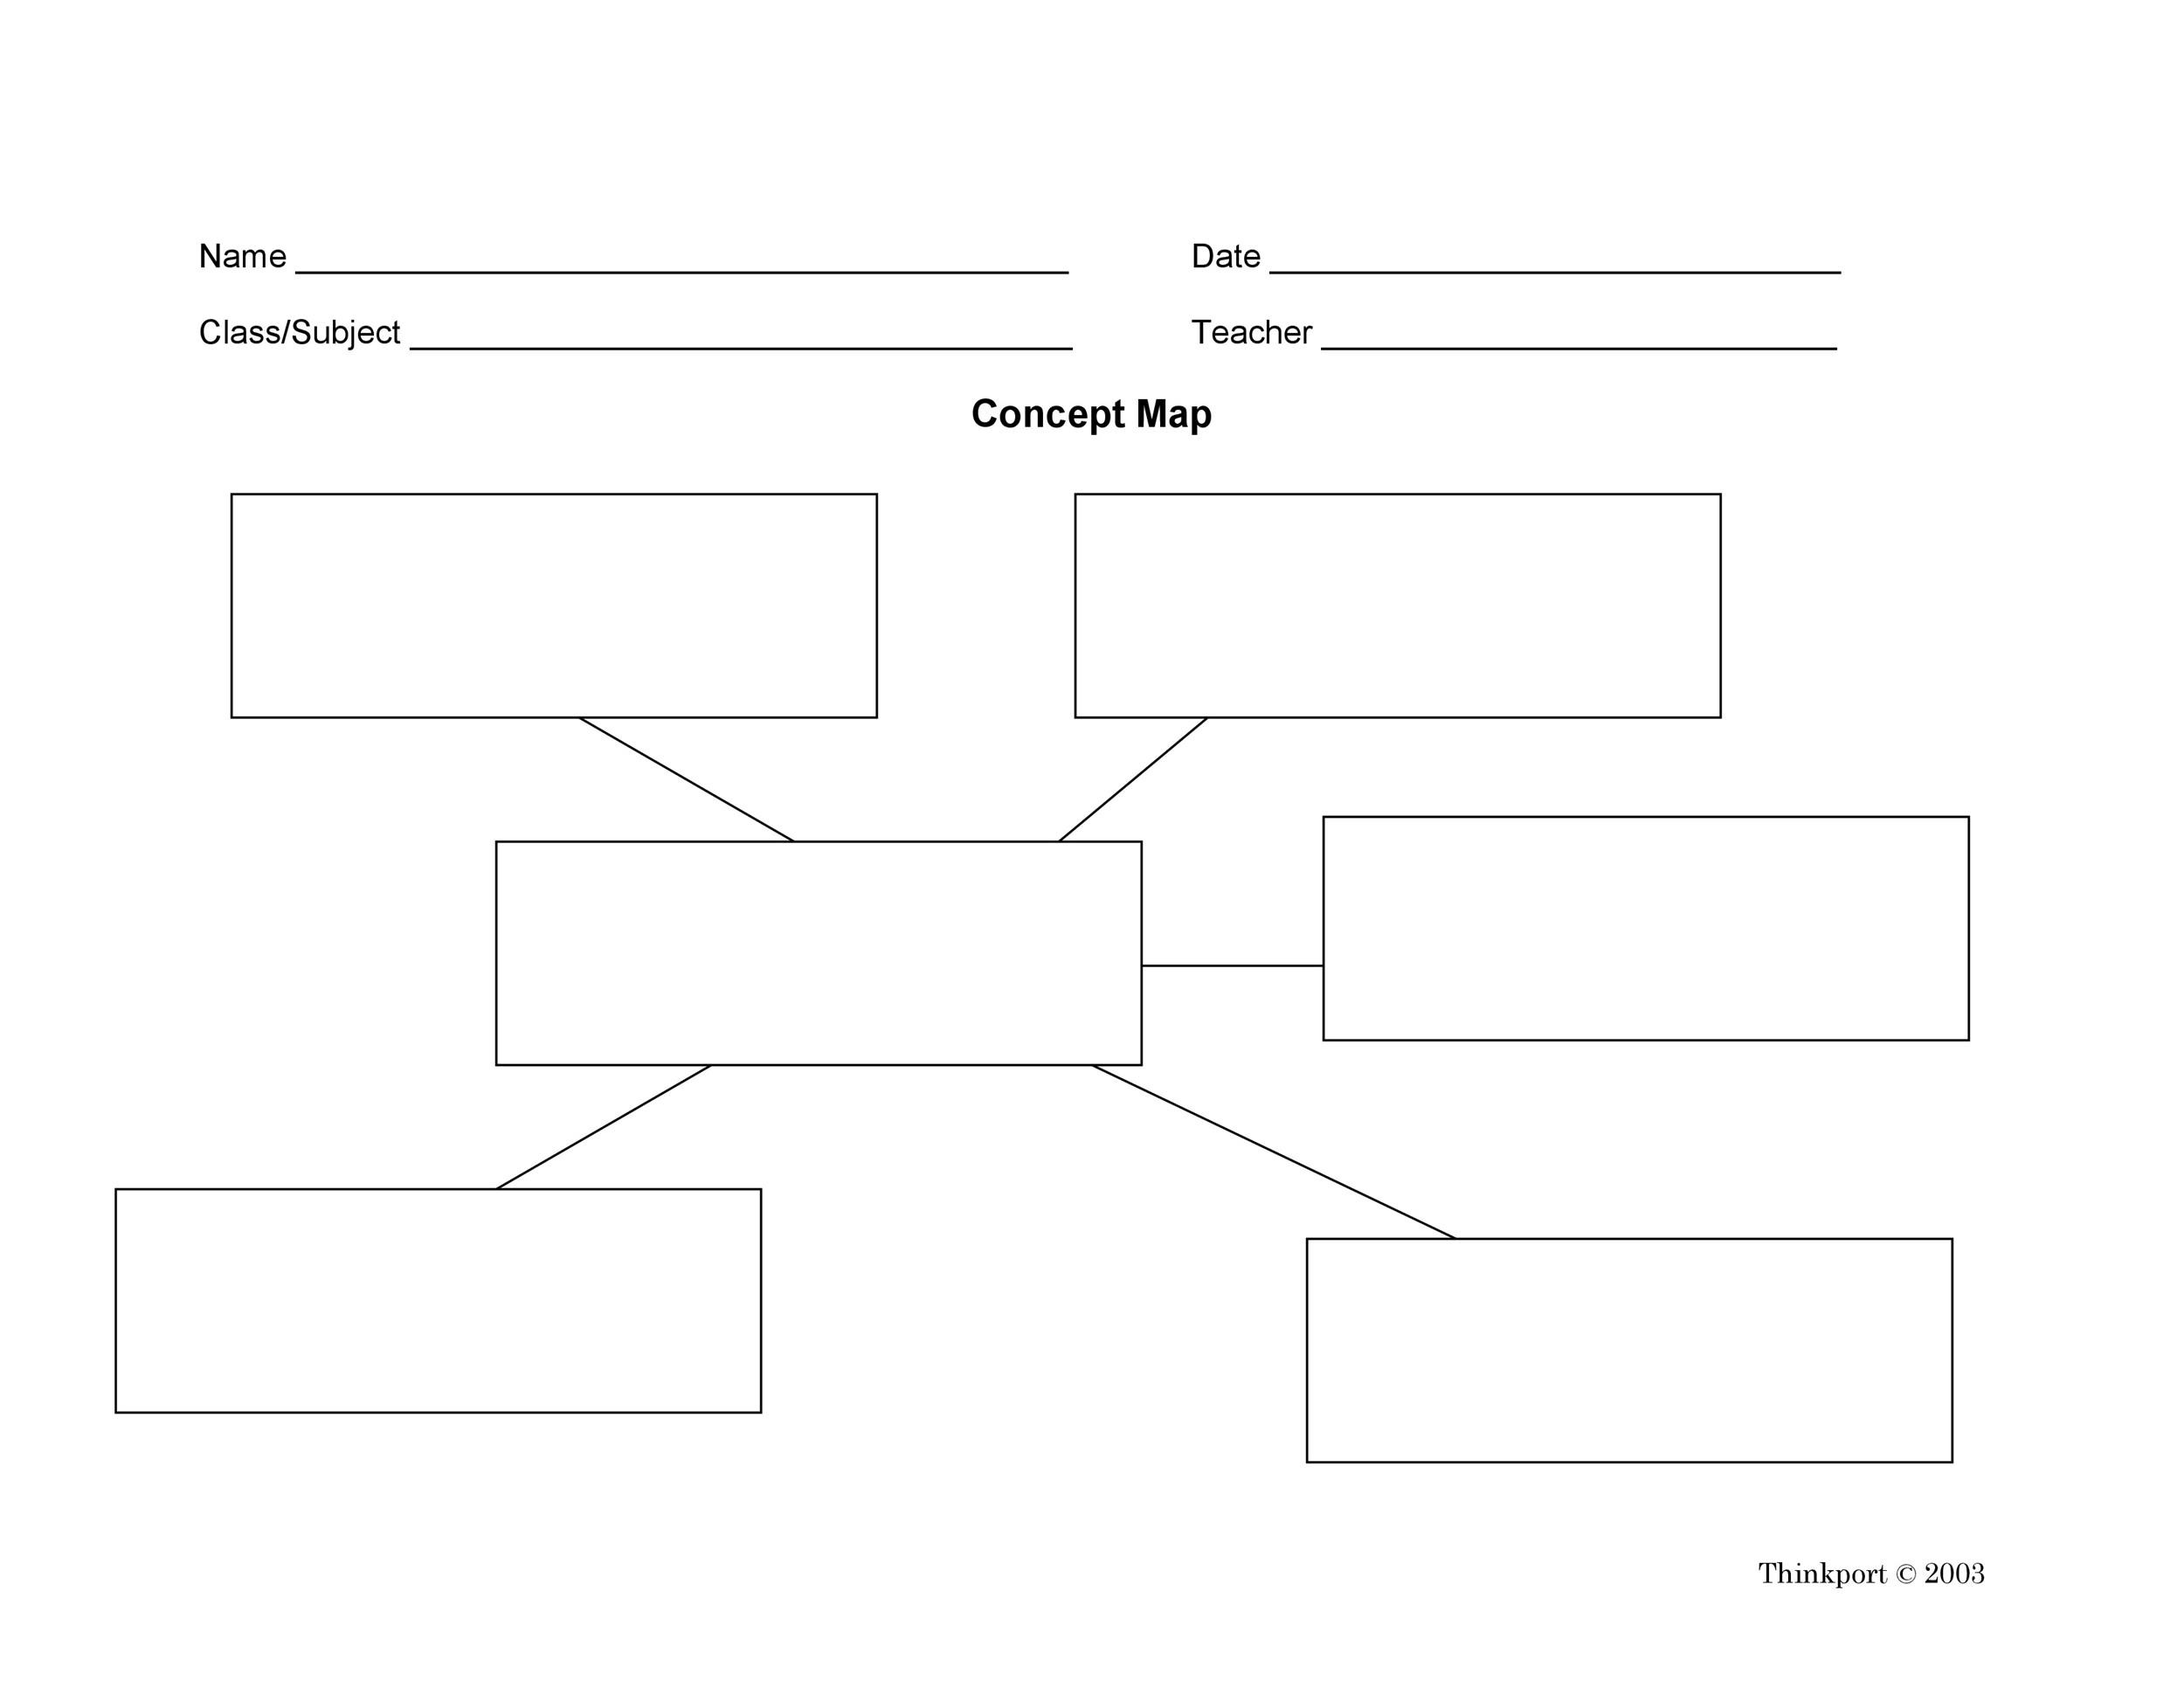 40+ Concept Map Templates [Hierarchical, Spider, Flowchart]